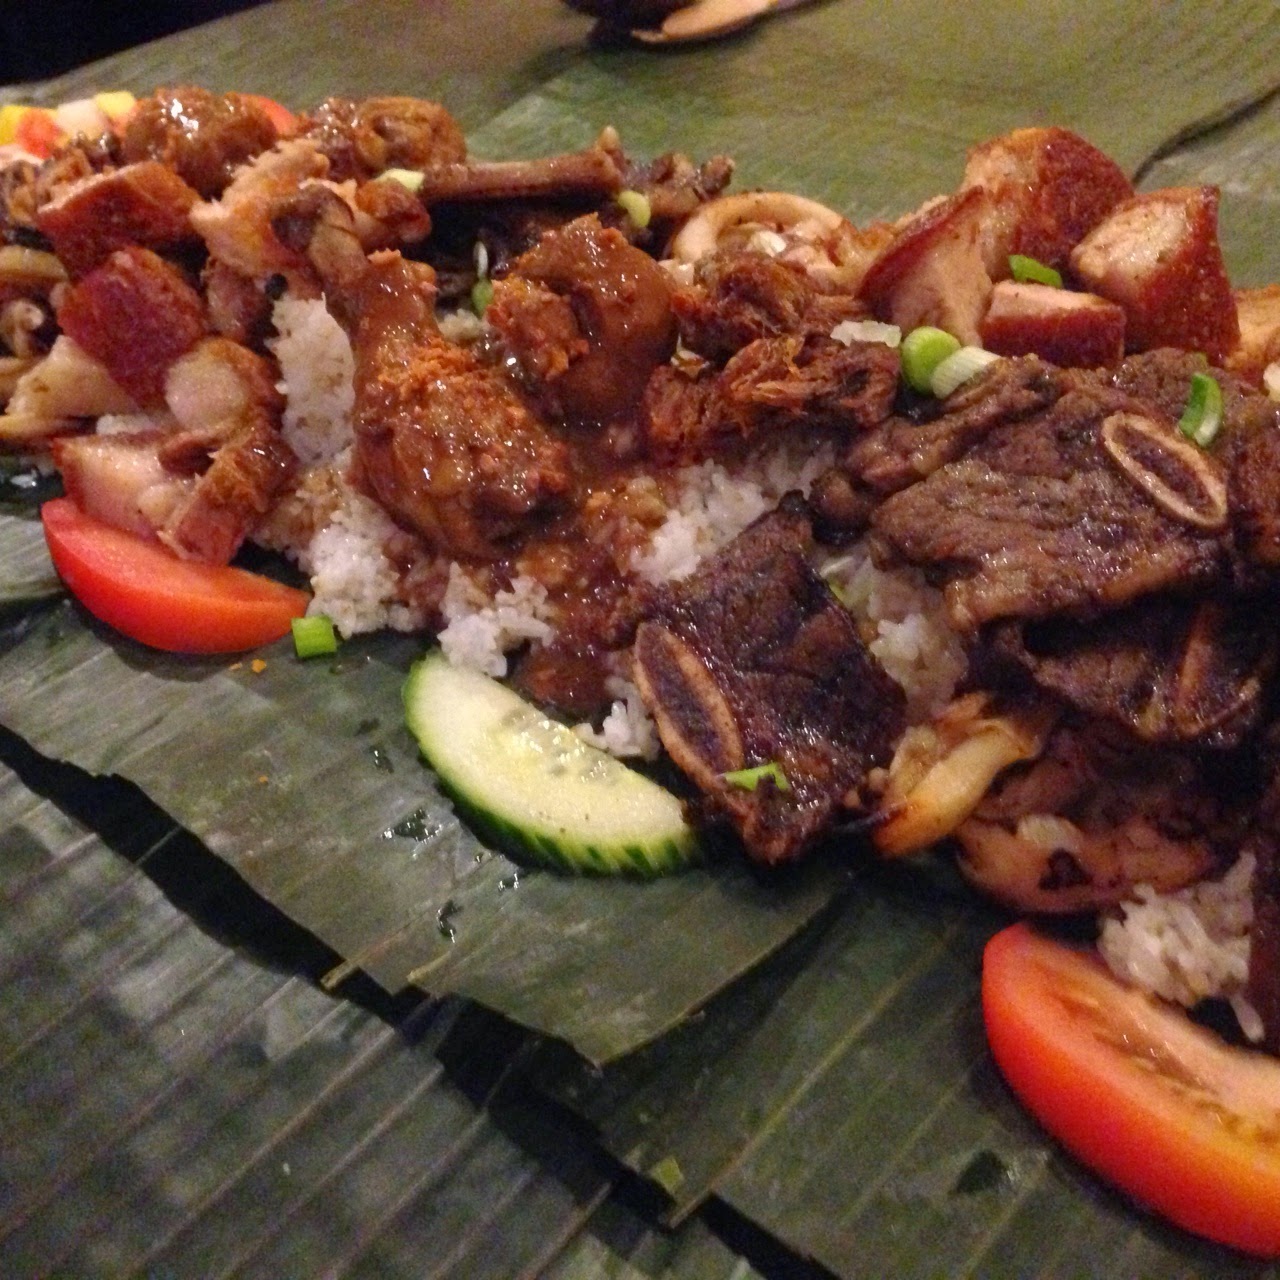 Filipino table setting - Creating The Filipino Kamayan Eating With Your Hands Experience At Home